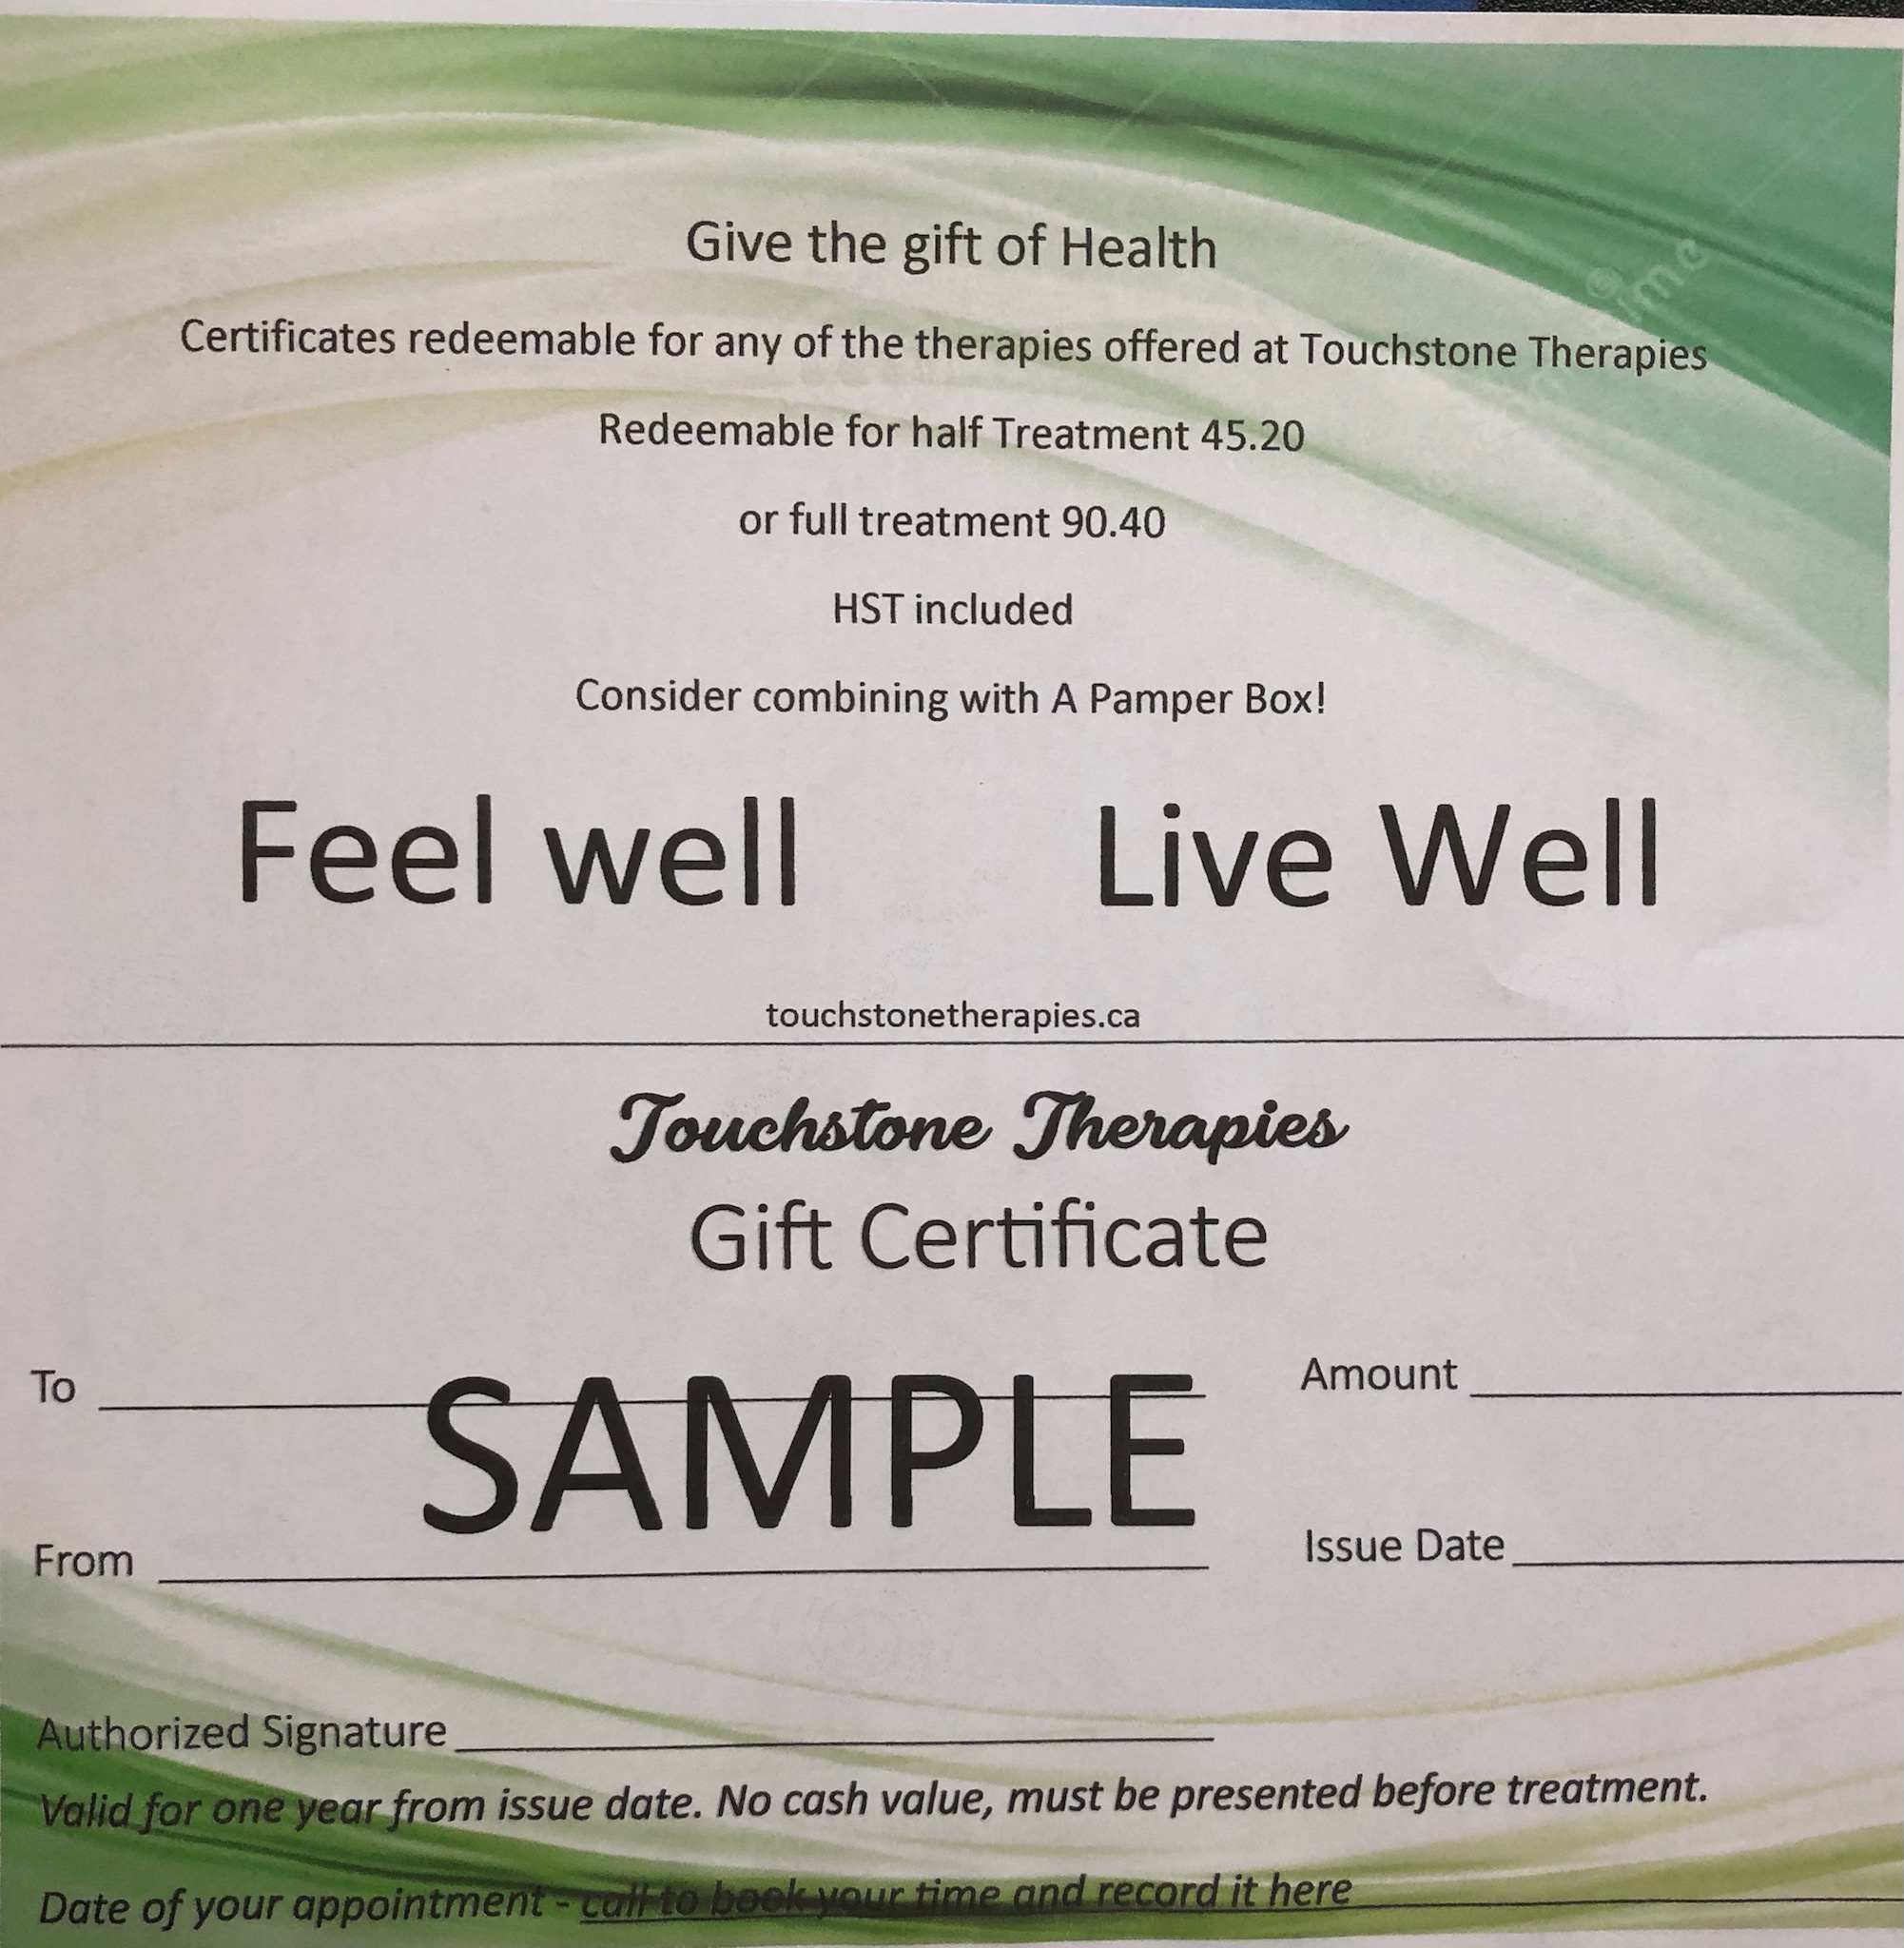 Gift Certificate (Touchstone Therapies) Image